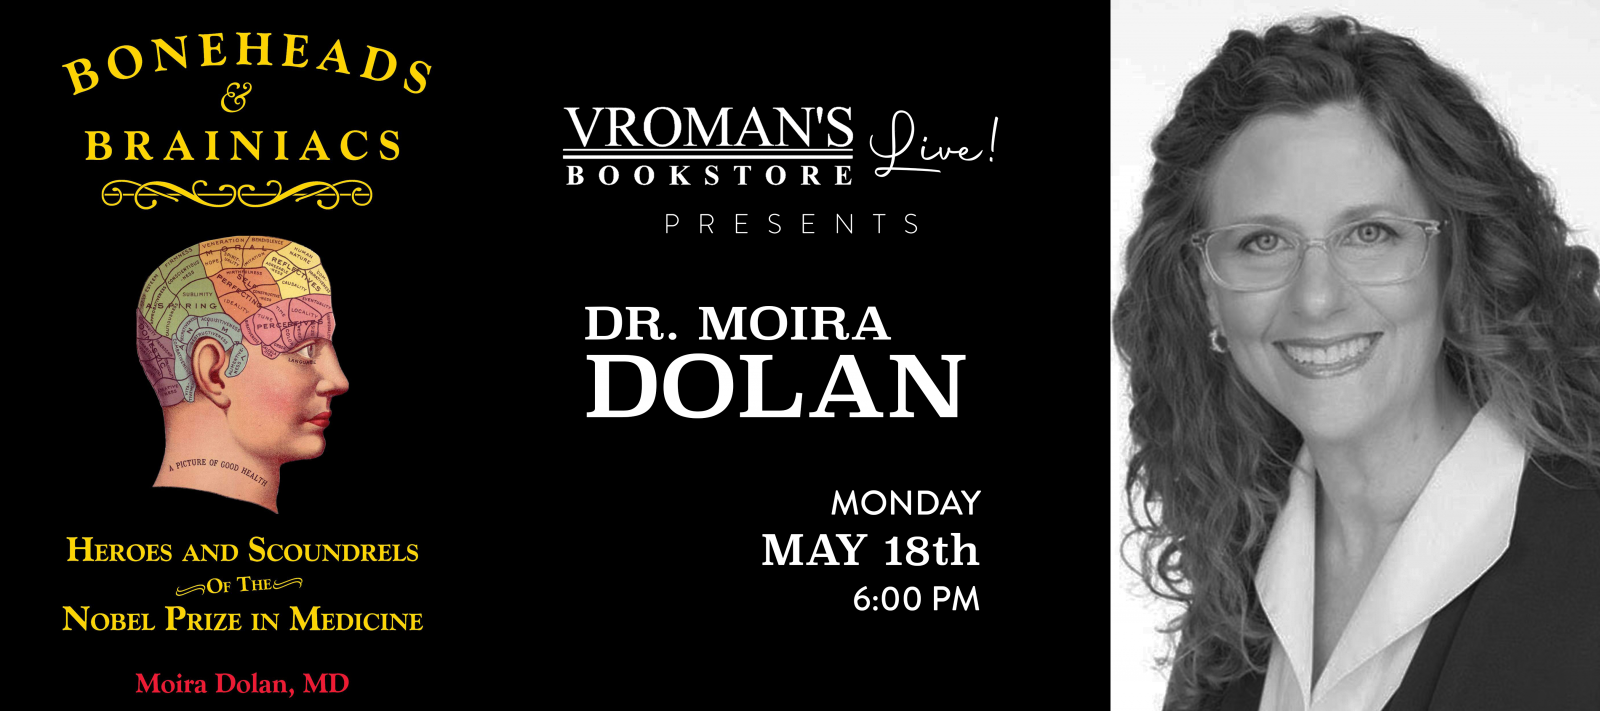 Vroman's Live presents Dr. Moira Dolan on Monday May 18th at 6pm